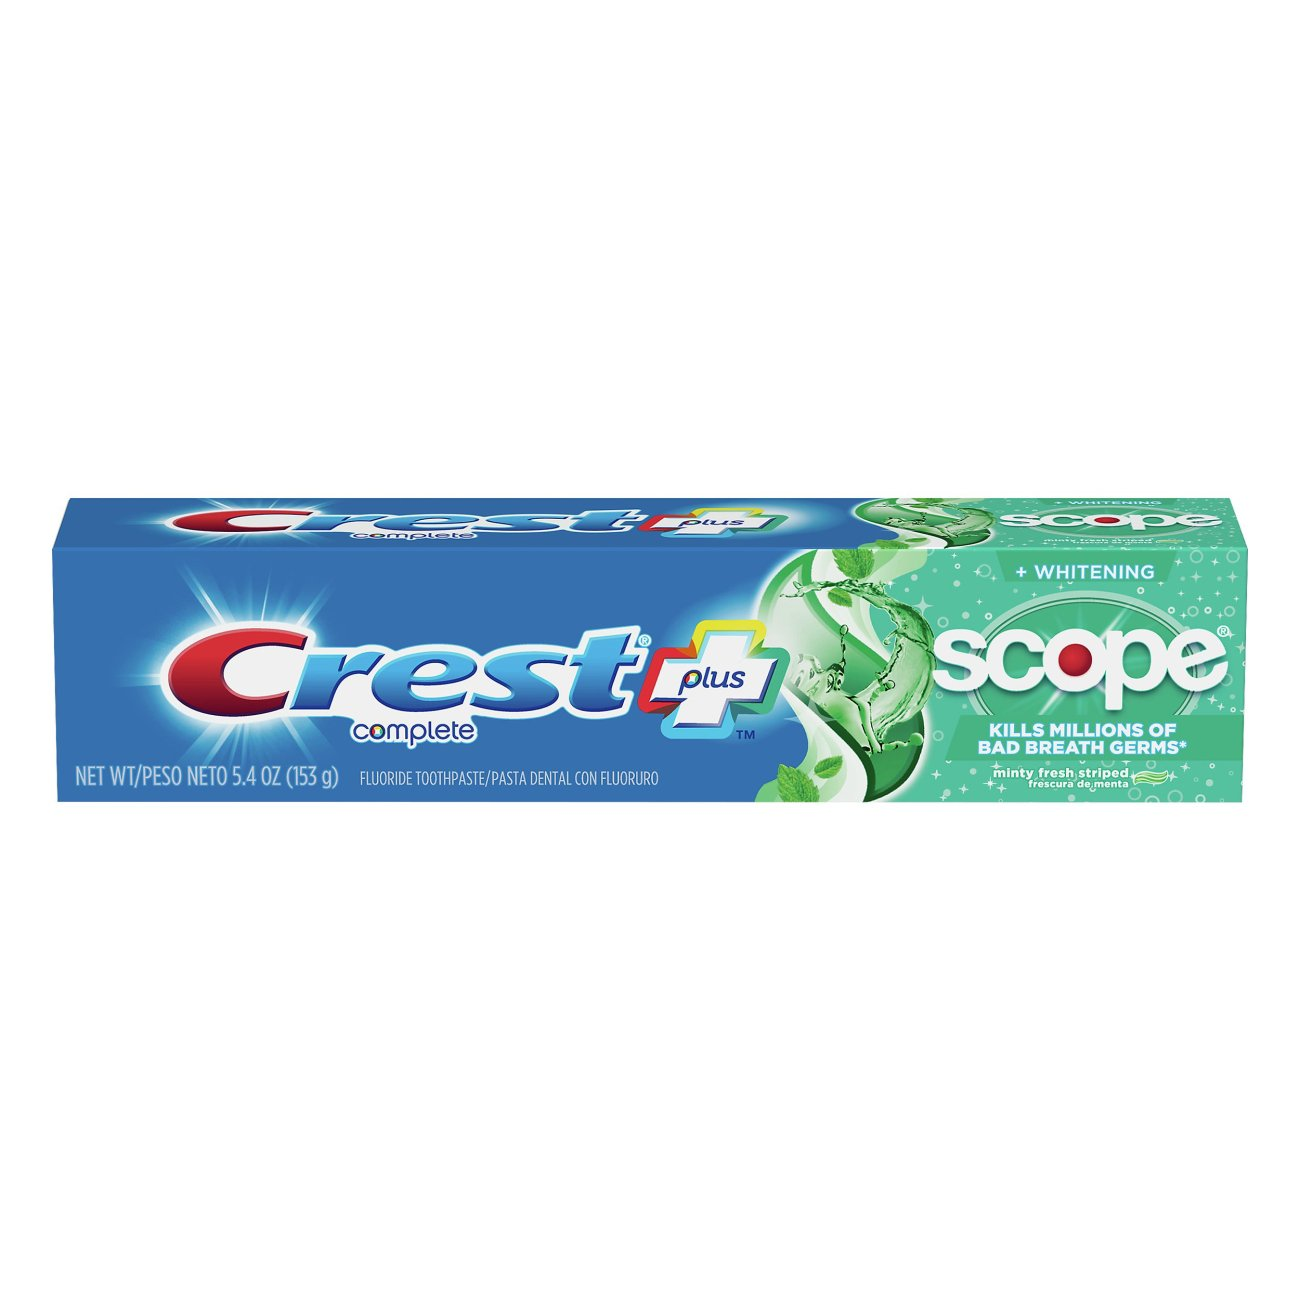 Crest Scope Complete Whitening Minty Fresh Striped Toothpaste